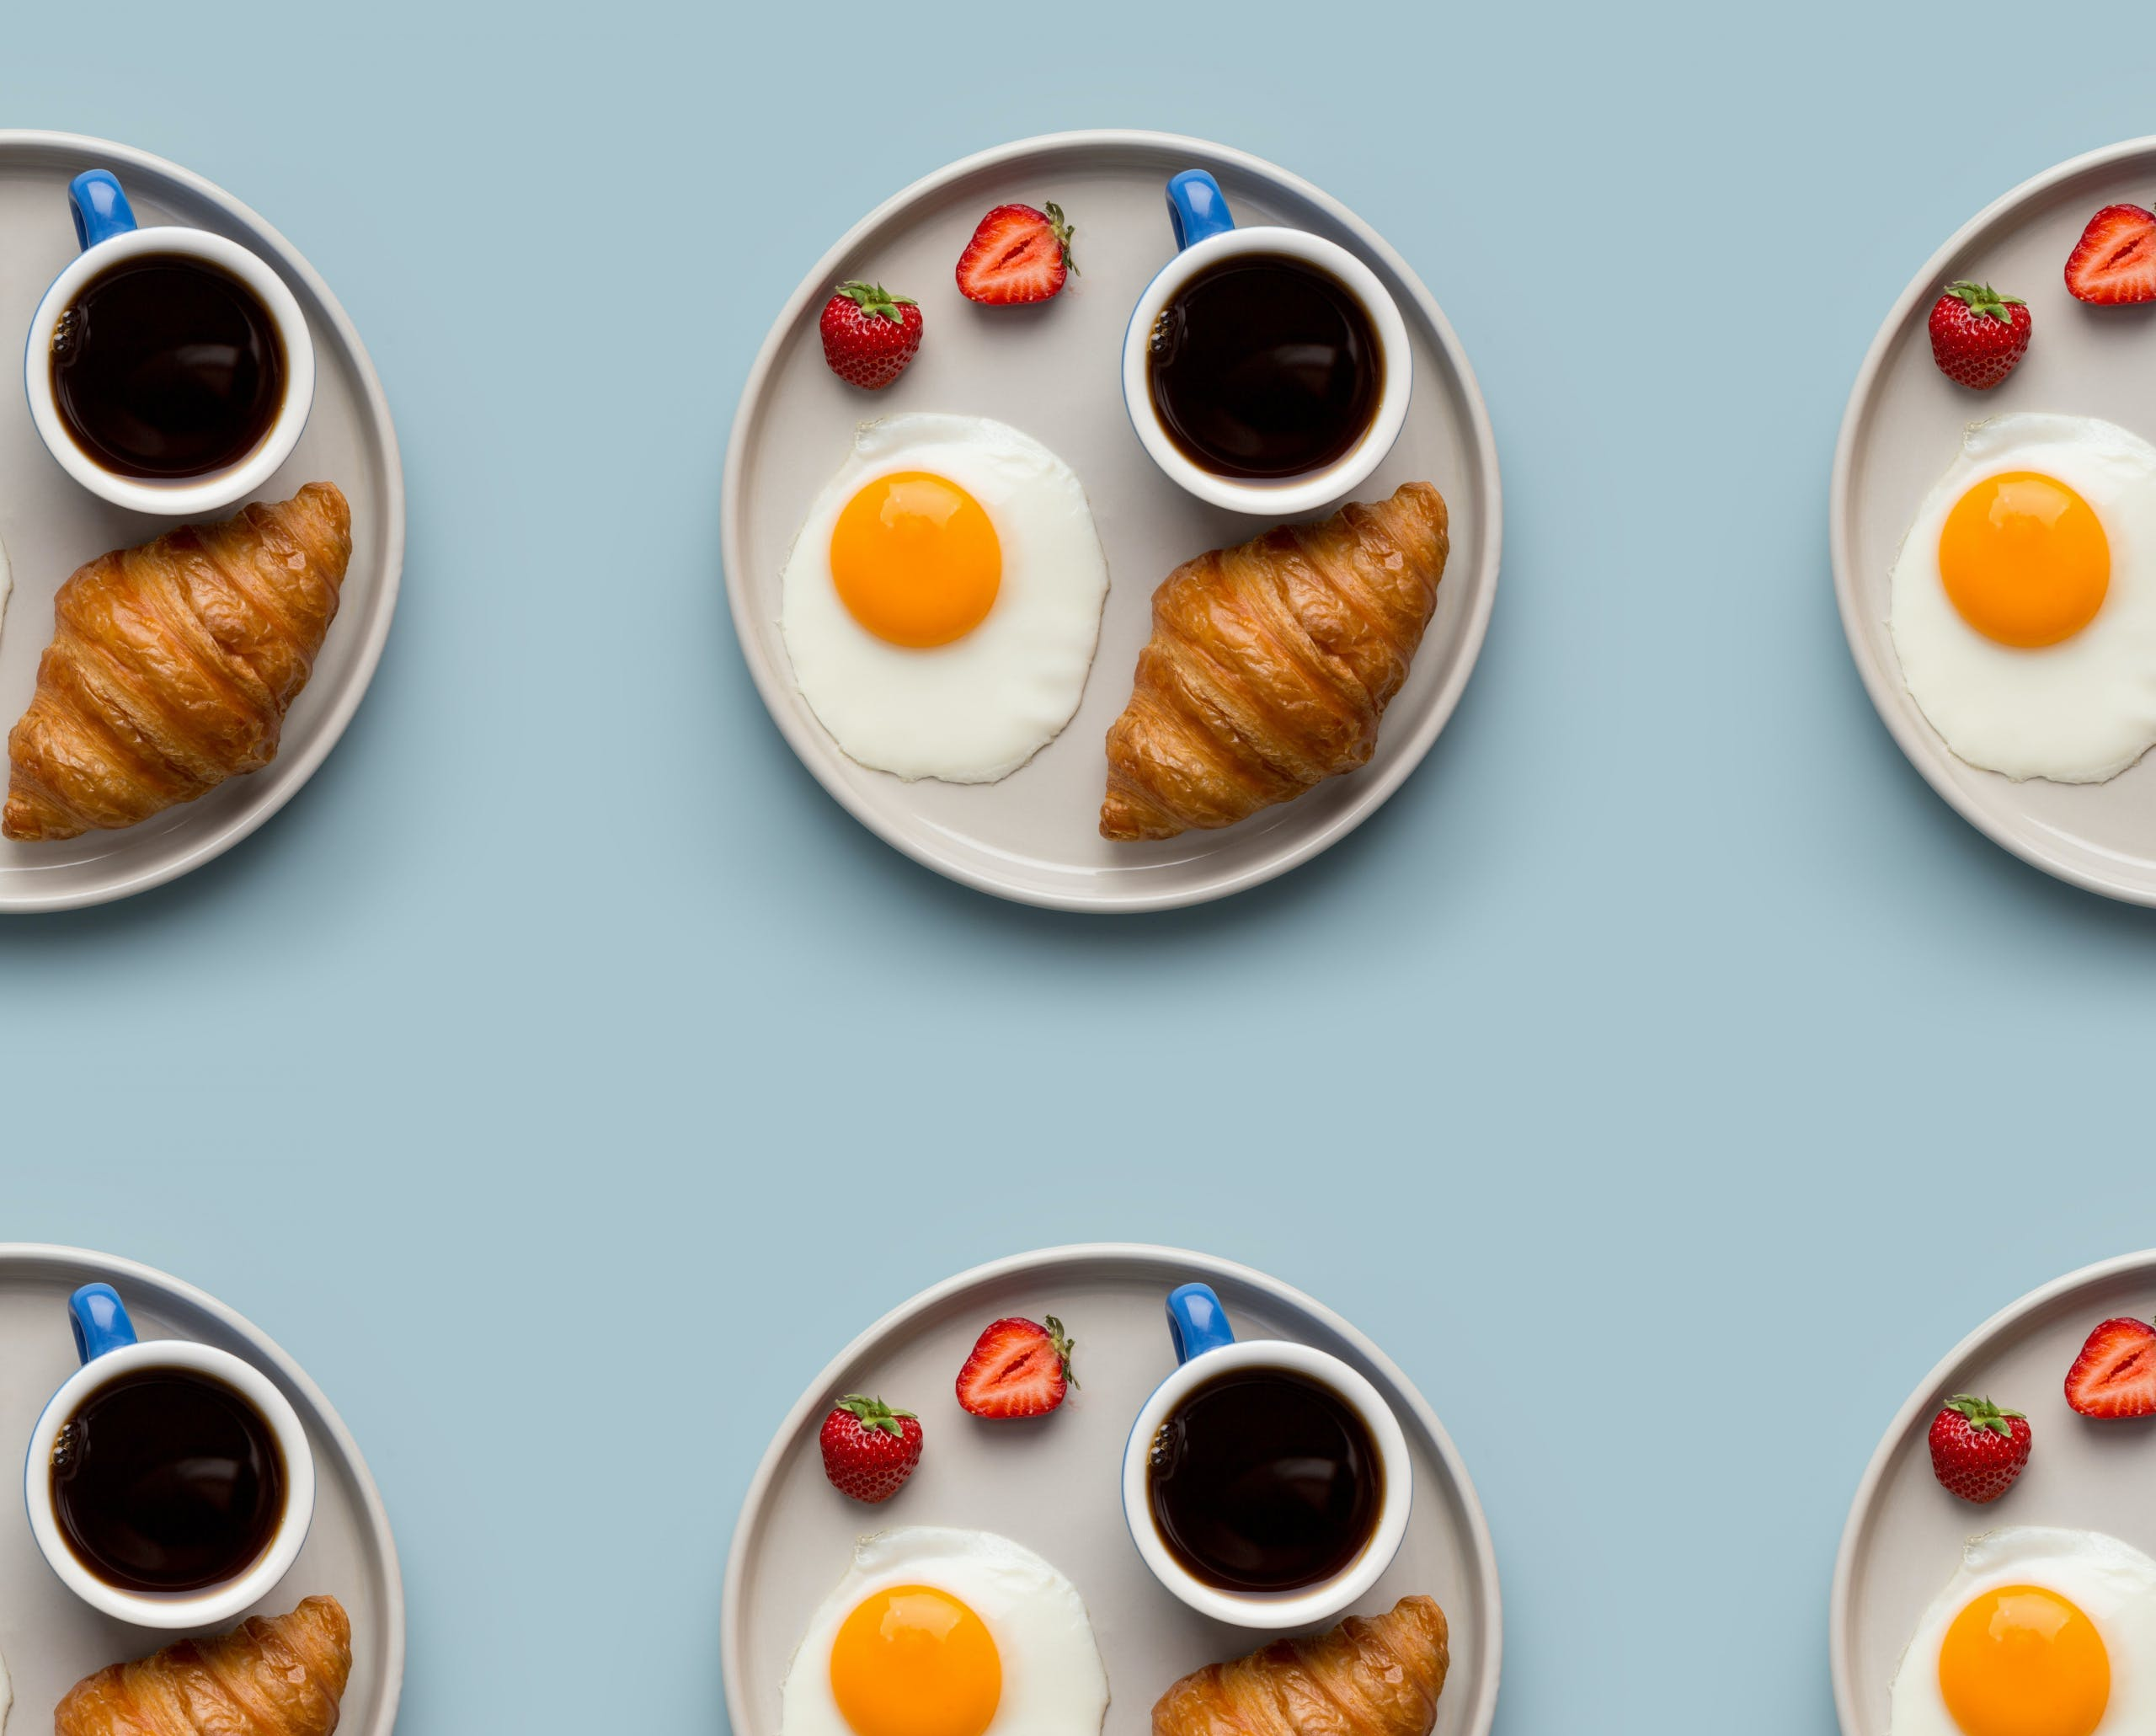 repeated plates of coffee, fried egg, strawberries and croissant in a grid pattern